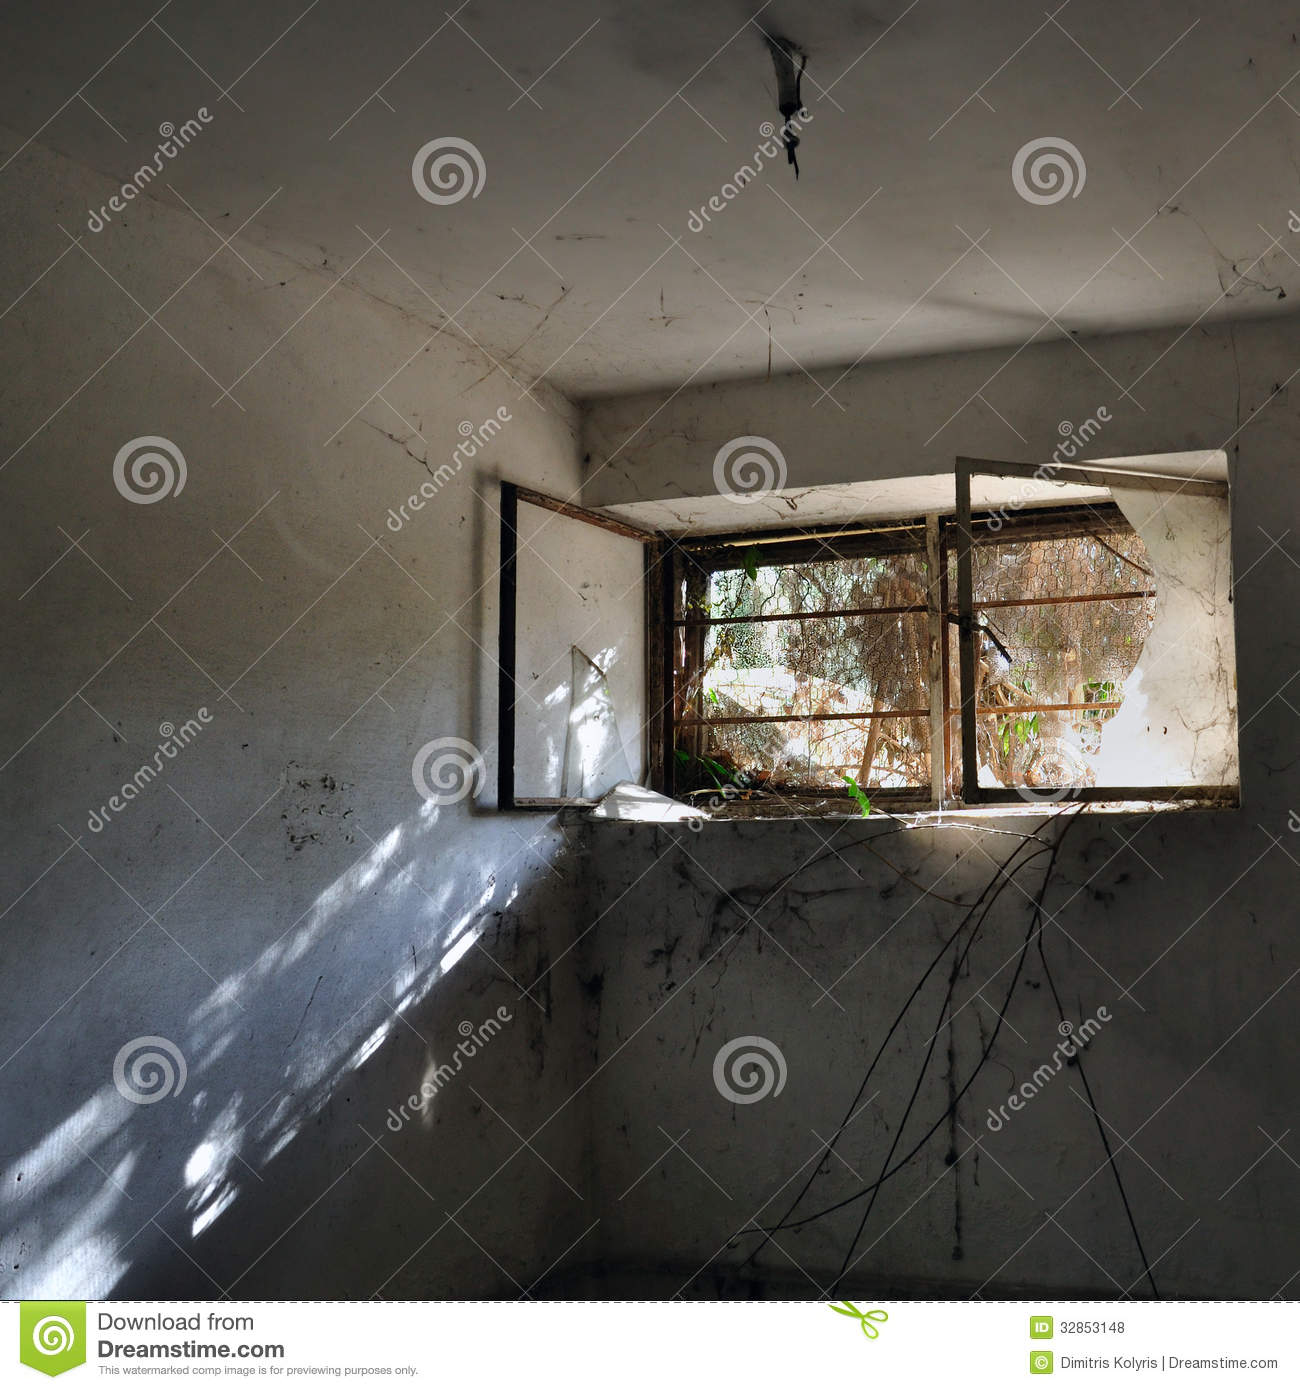 Reflection In Dark Room Stock Photo. Image Of Dilapidated